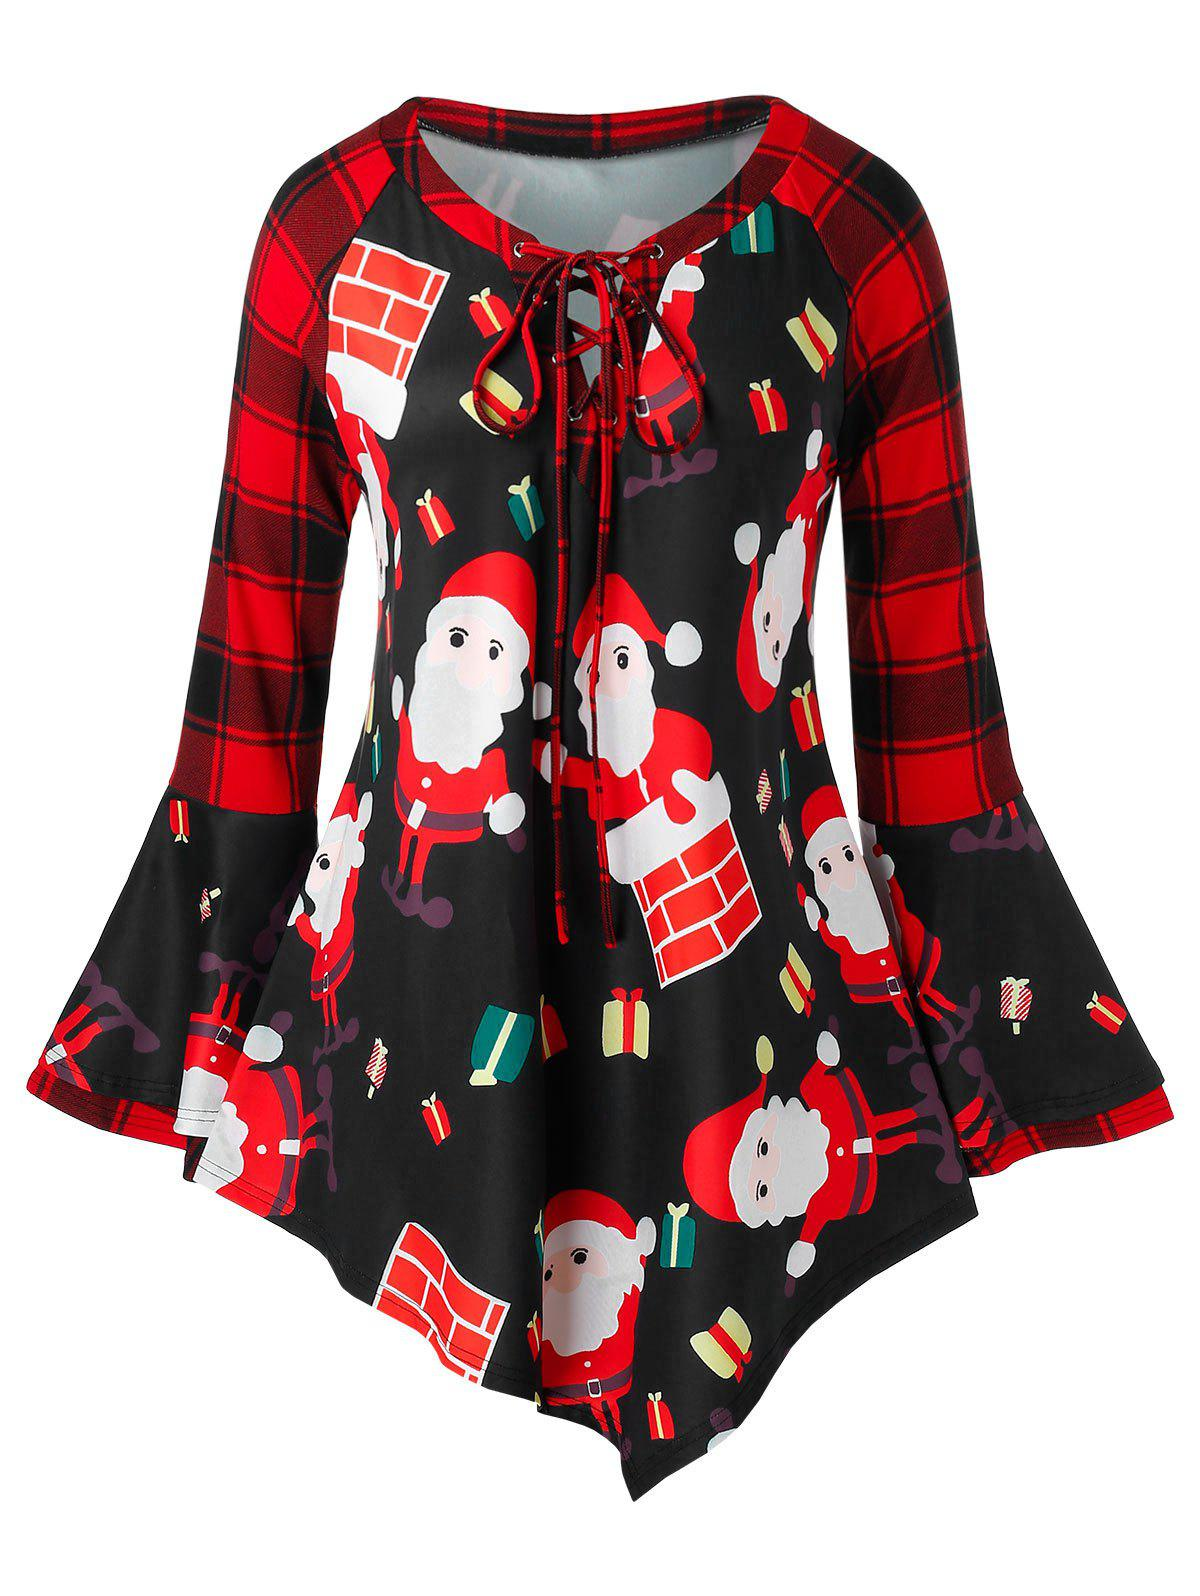 Plus Size Plaid Bell Sleeve Santa Claus Print Christmas T Shirt - RED 5X